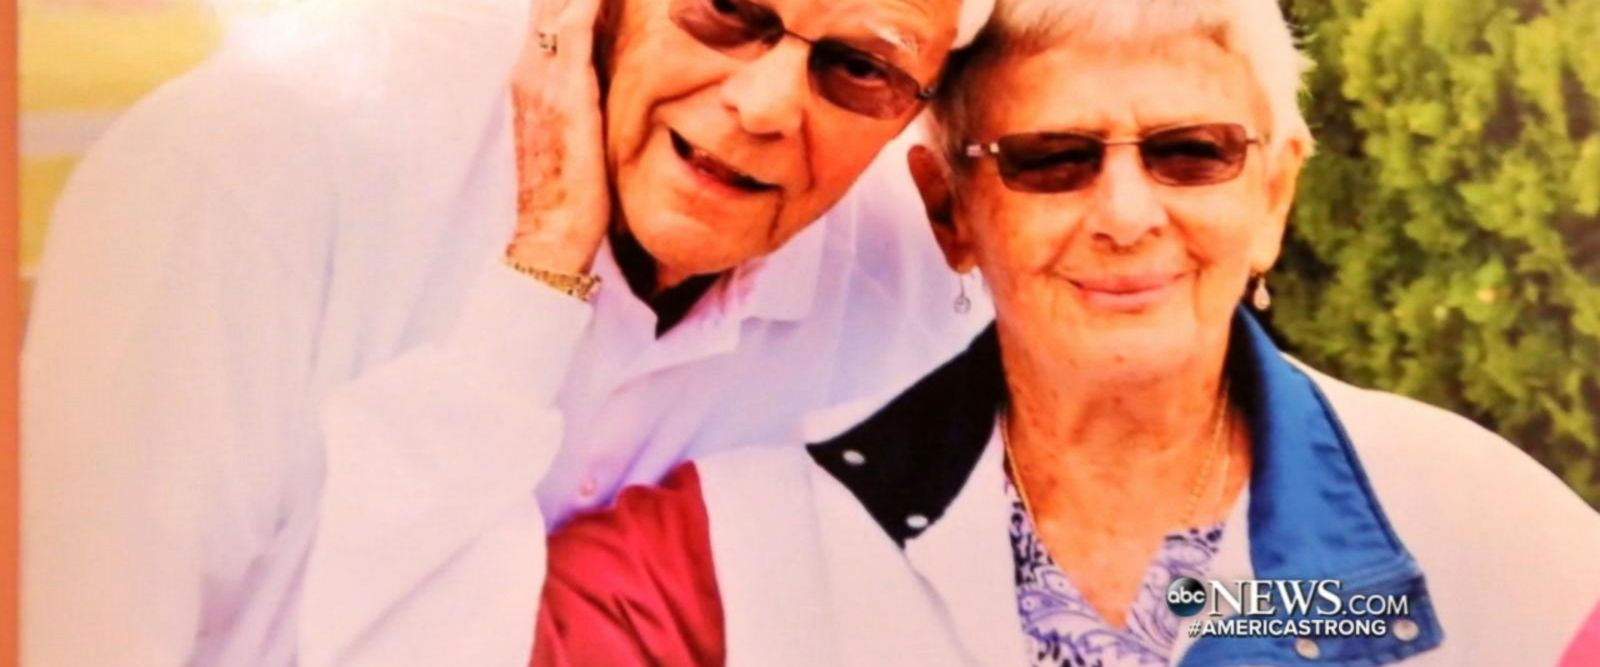 VIDEO: 'Wouldn't trade the experience' says husband caring for wife with Alzheimer's